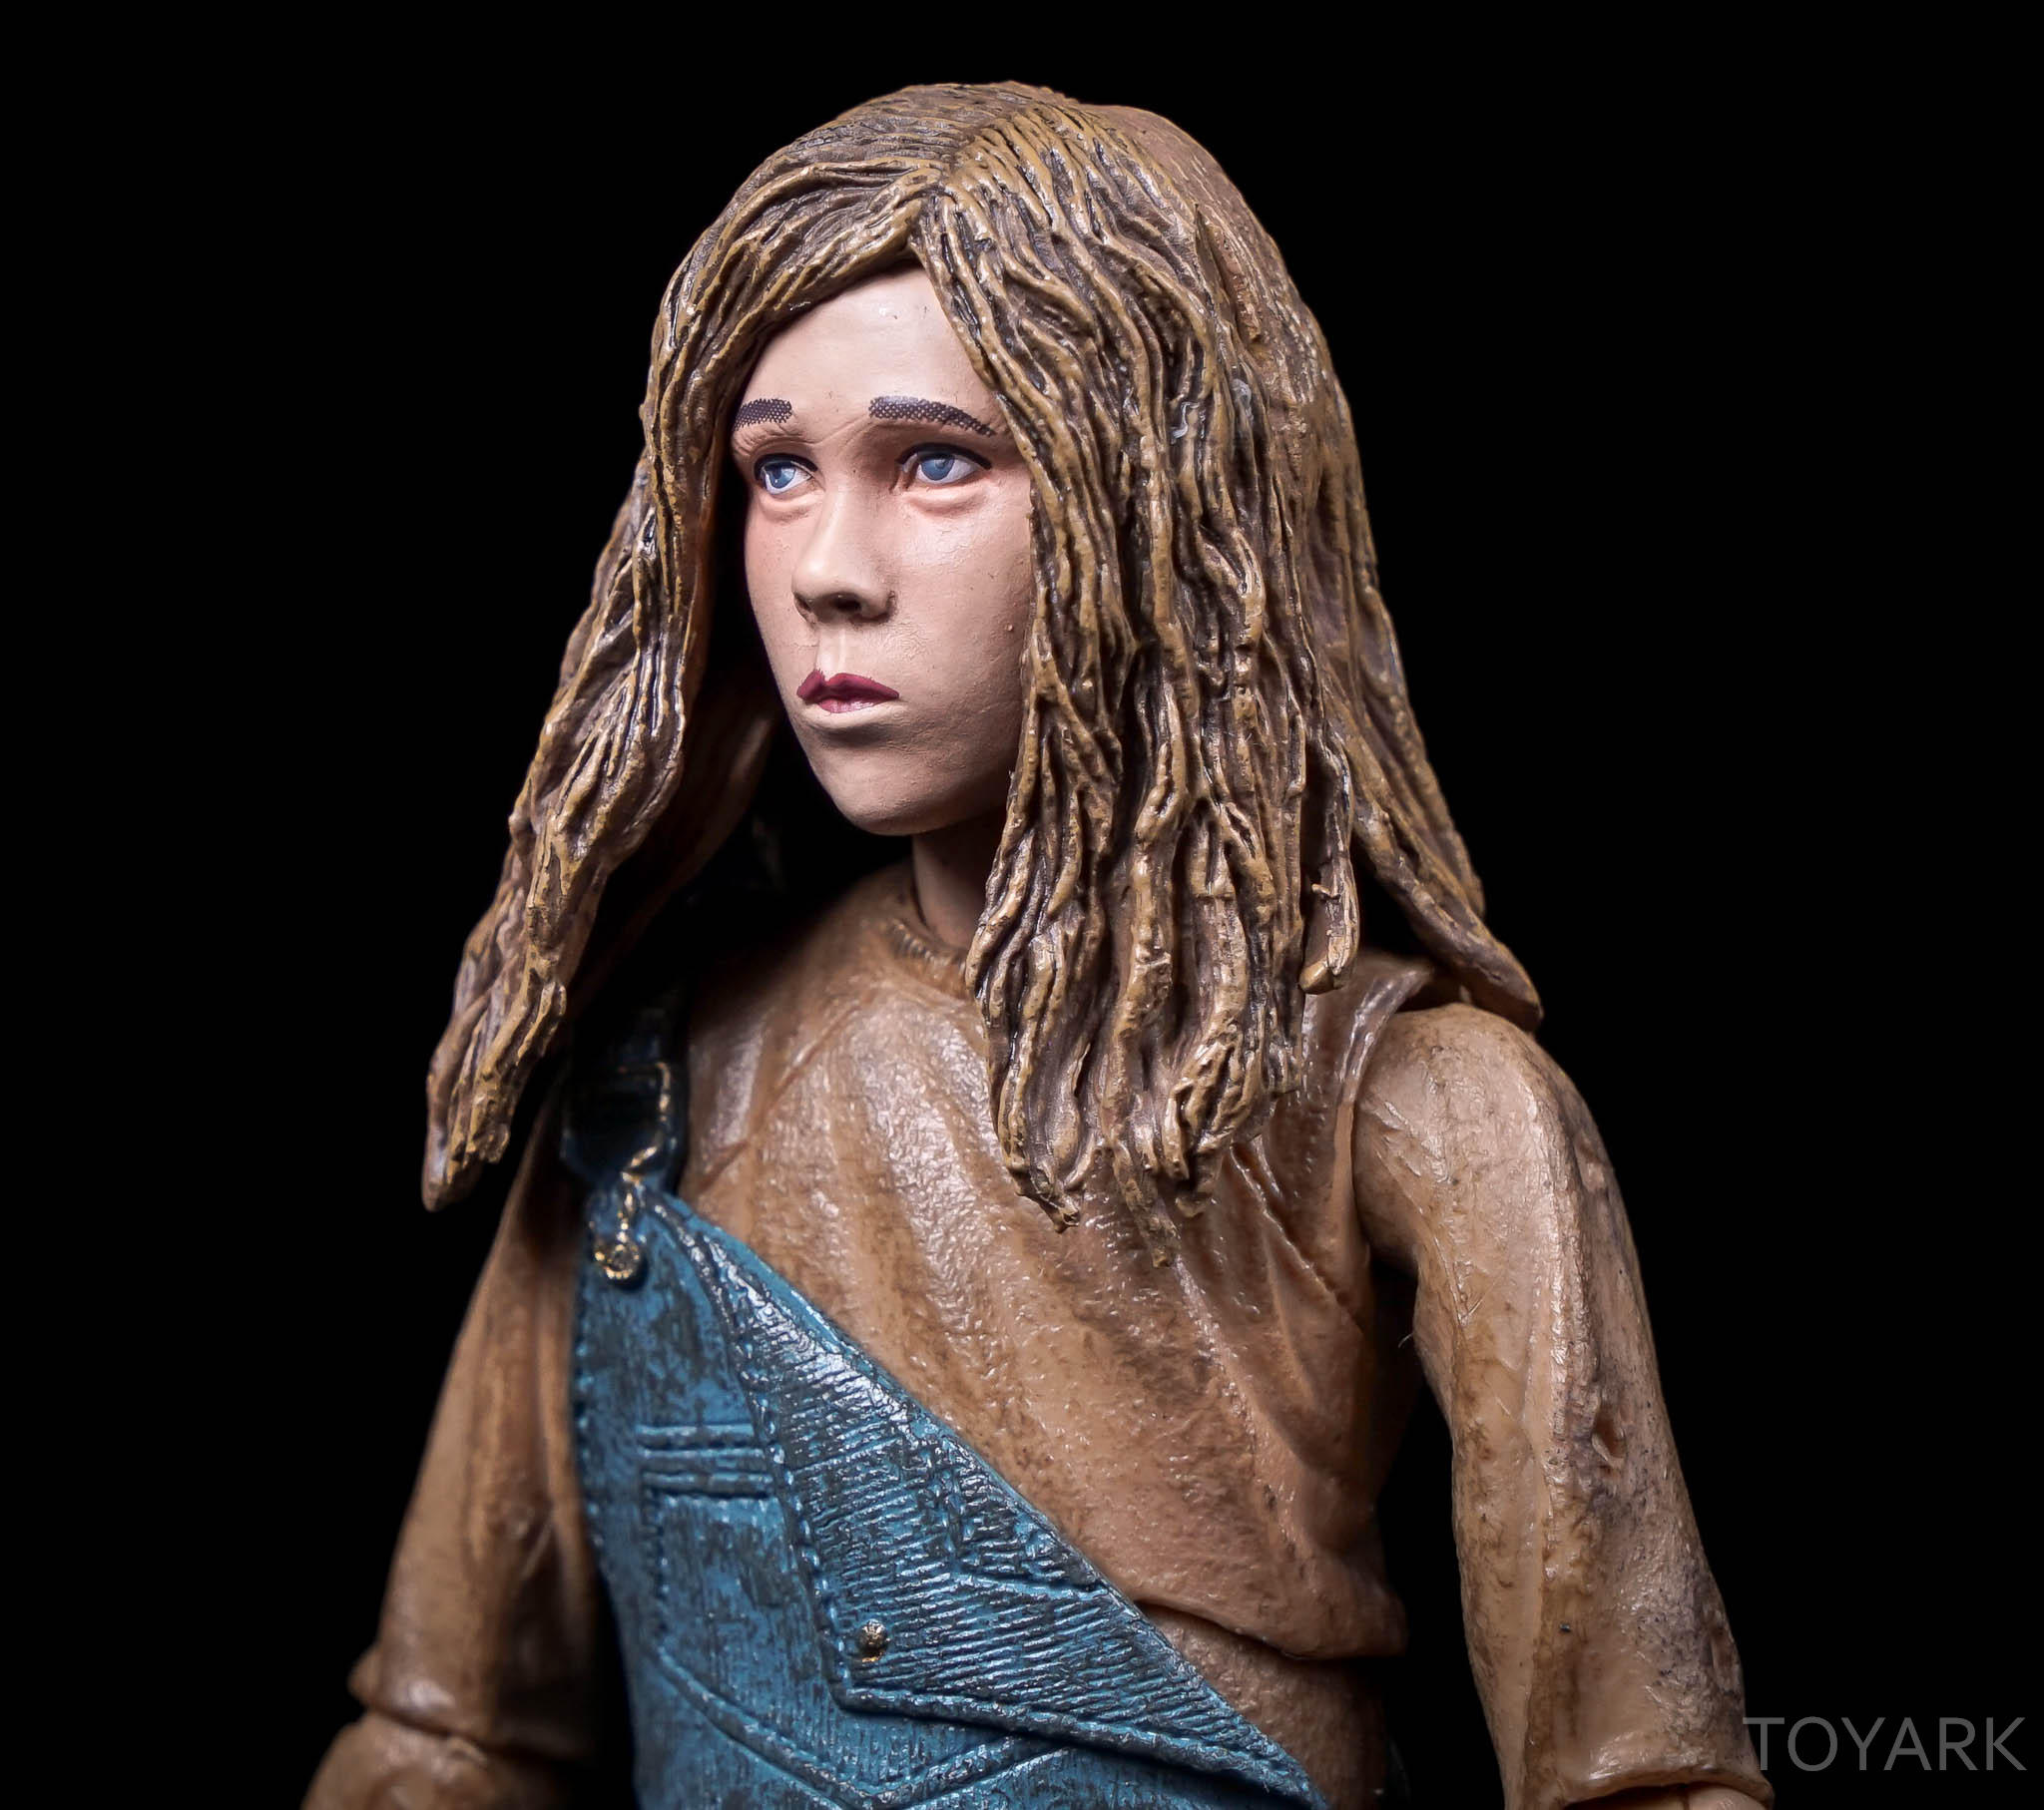 http://news.toyark.com/wp-content/uploads/sites/4/2016/08/NECA-SDCC2016-Aliens-Newt-013.jpg